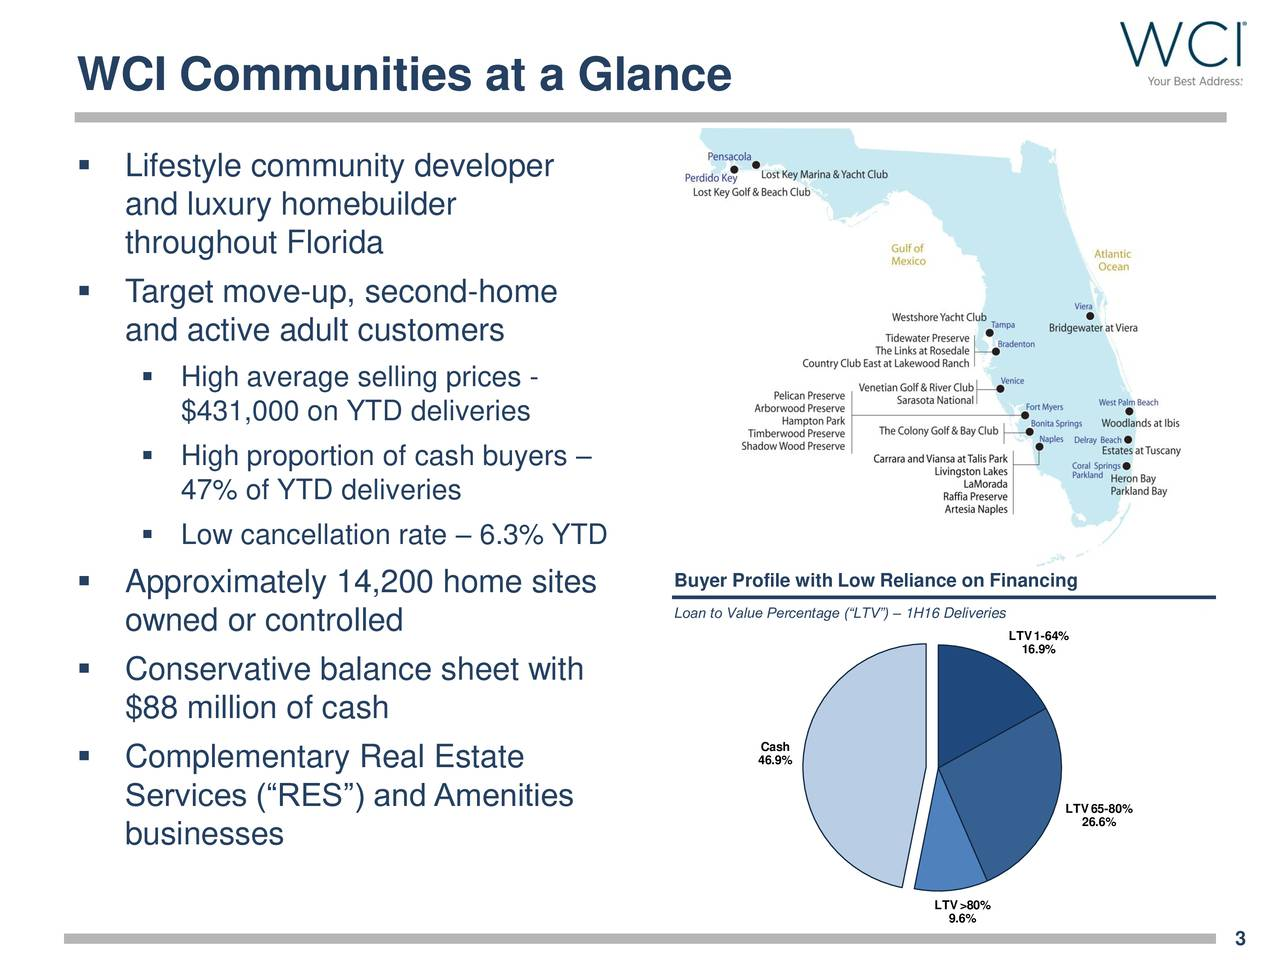 Lifestyle community developer and luxury homebuilder throughout Florida Target move-up, second-home and active adult customers High average selling prices - $431,000 on YTD deliveries High proportion of cash buyers 47% of YTD deliveries Low cancellation rate  6.3% YTD Approximately 14,200 home sites Buyer Profile with Low Reliance on Financing owned or controlled Loan to Value Percentage (LTV)  1H16 Deliveries L16.9%4% Conservative balance sheet with $88 million of cash 46.9% Complementary Real Estate Services (RES) and Amenities LTV65-80% 26.6% businesses LTV>80% 9.6% 3